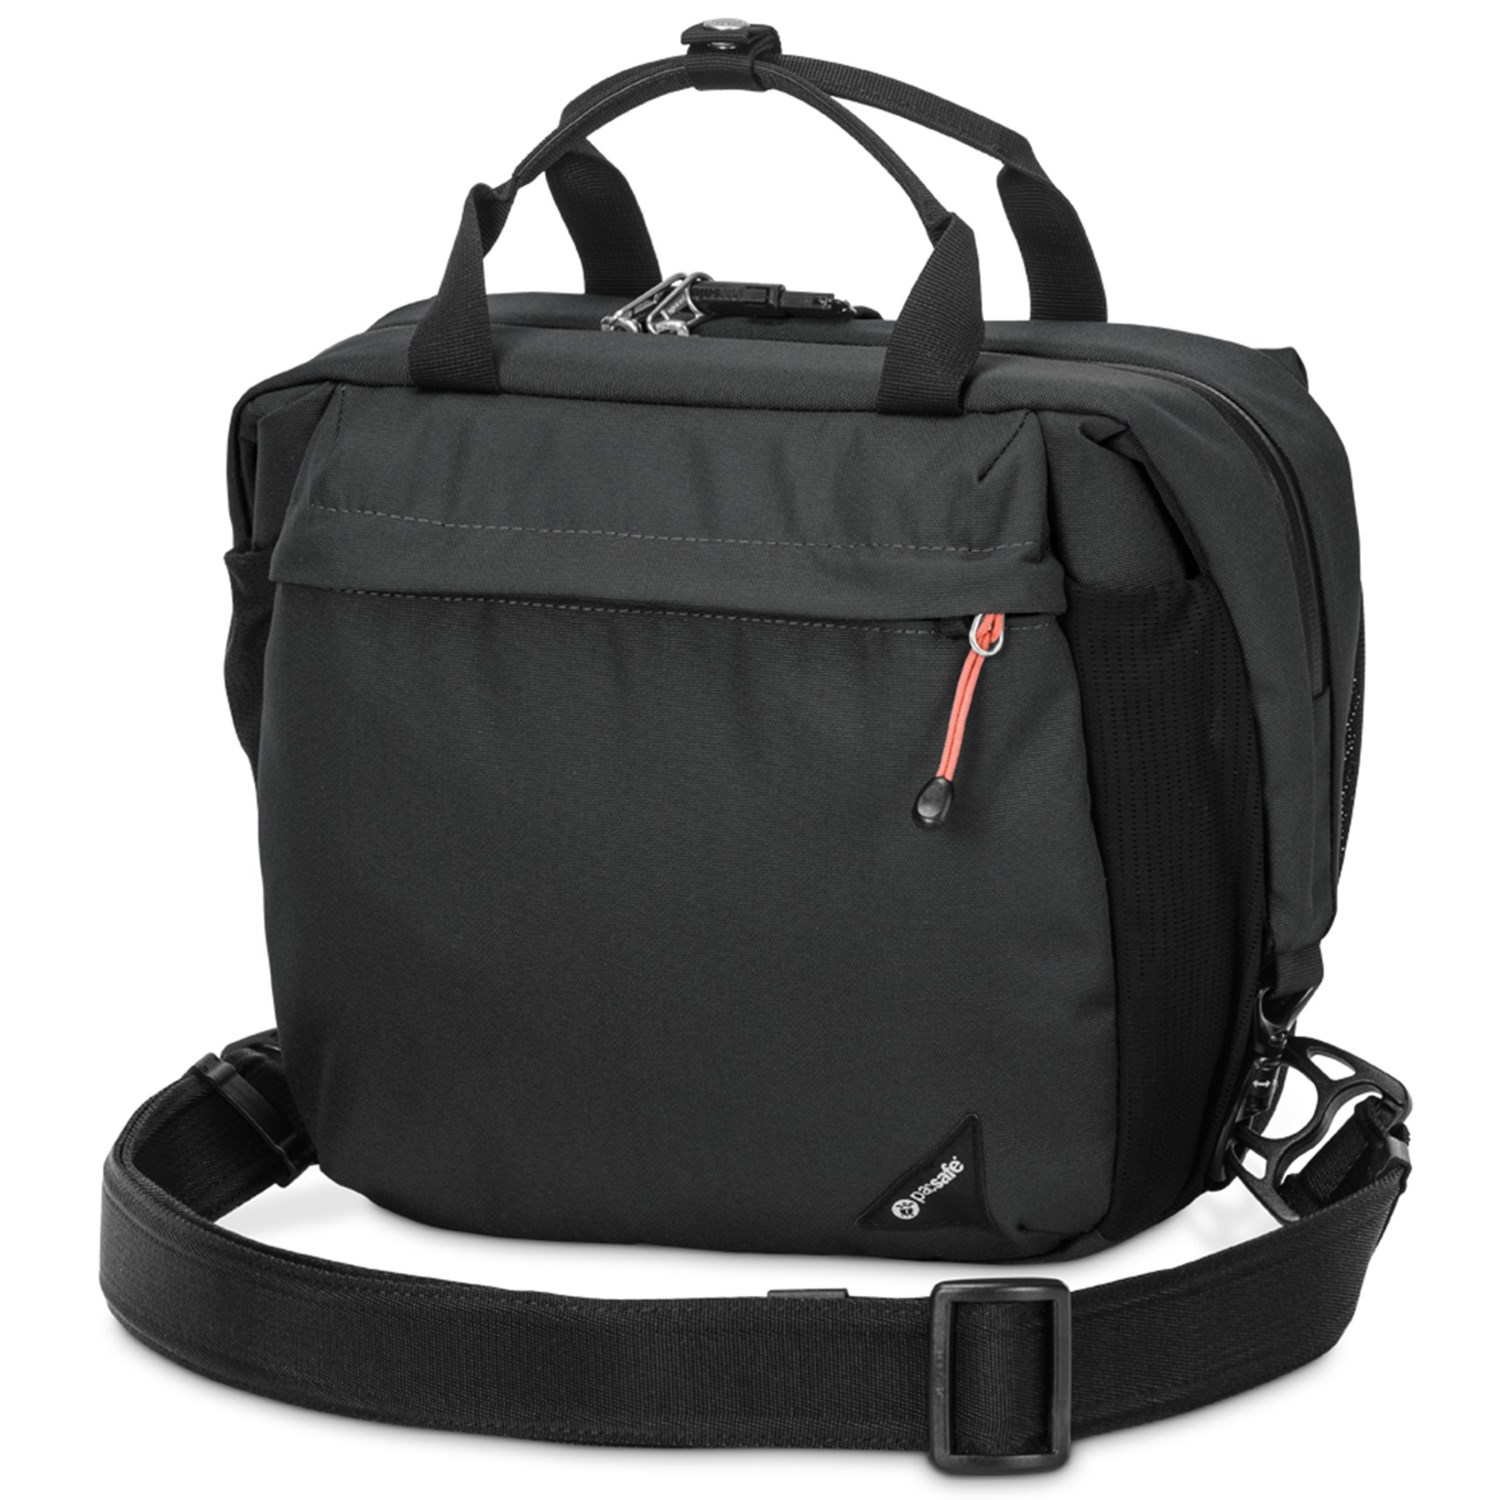 2682dcc15648 Pacsafe Camsafe® LX10 Anti-Theft Camera Bag